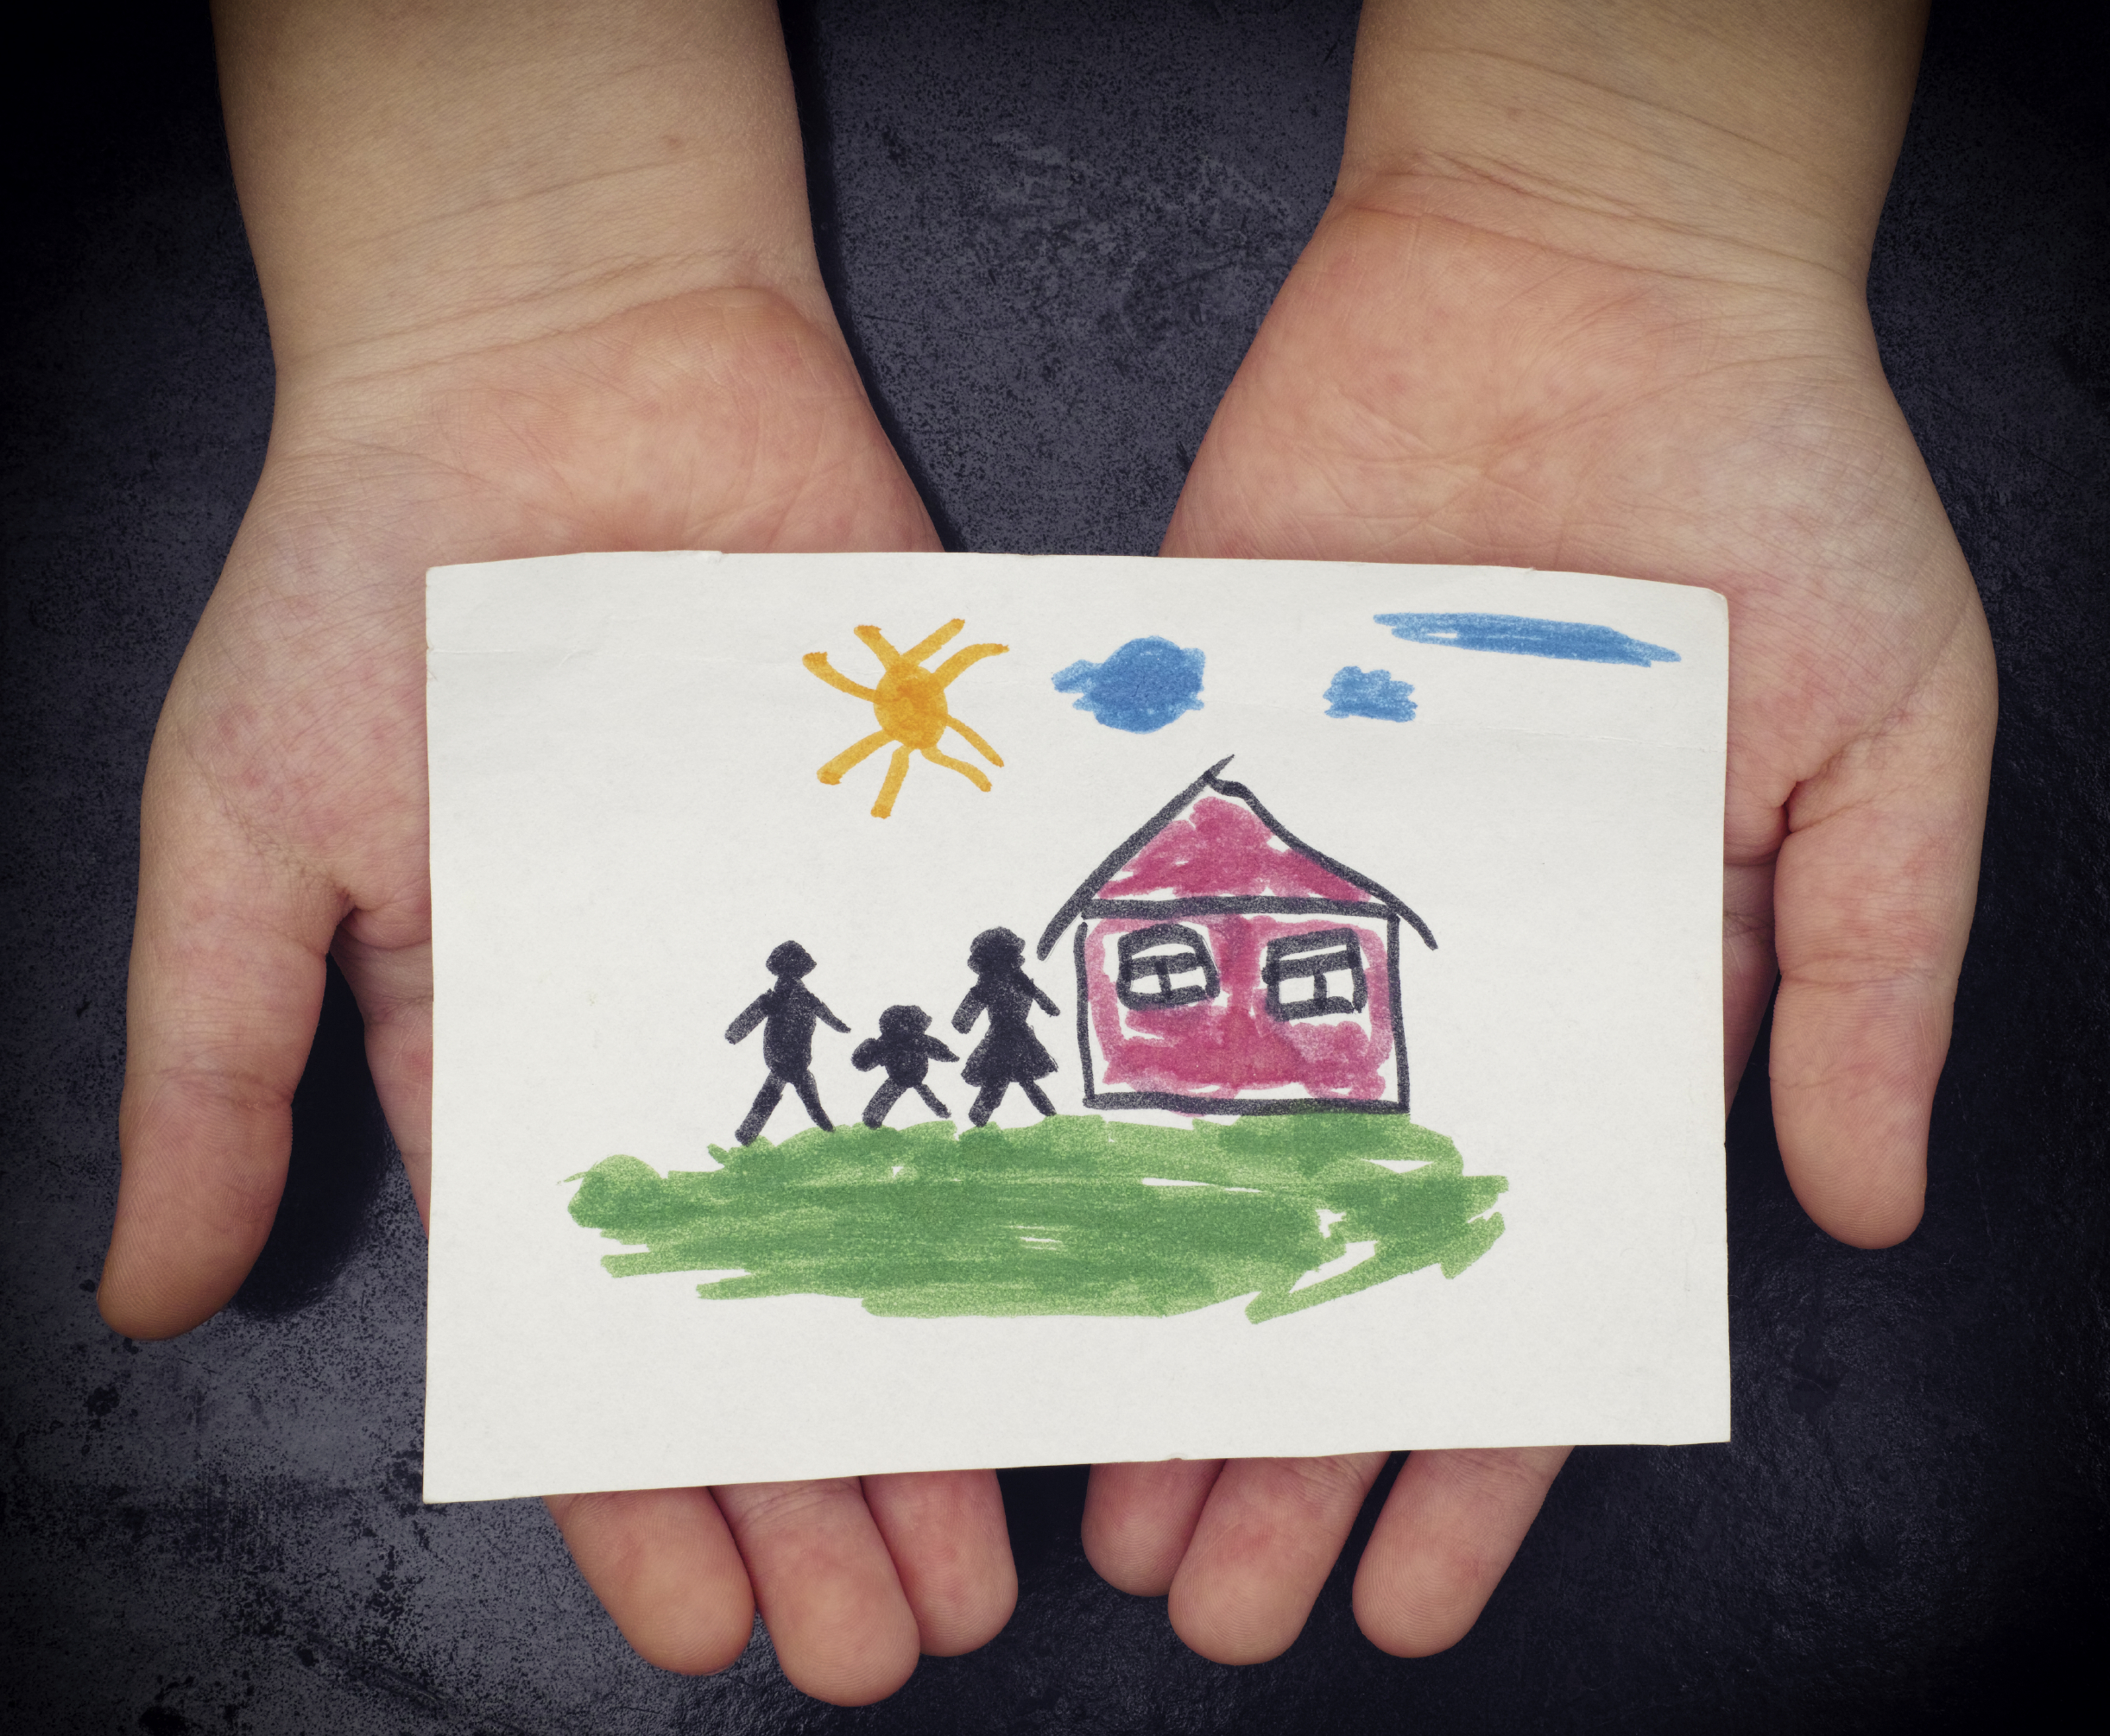 Holding the risk: the balance between child protection and the right to family life